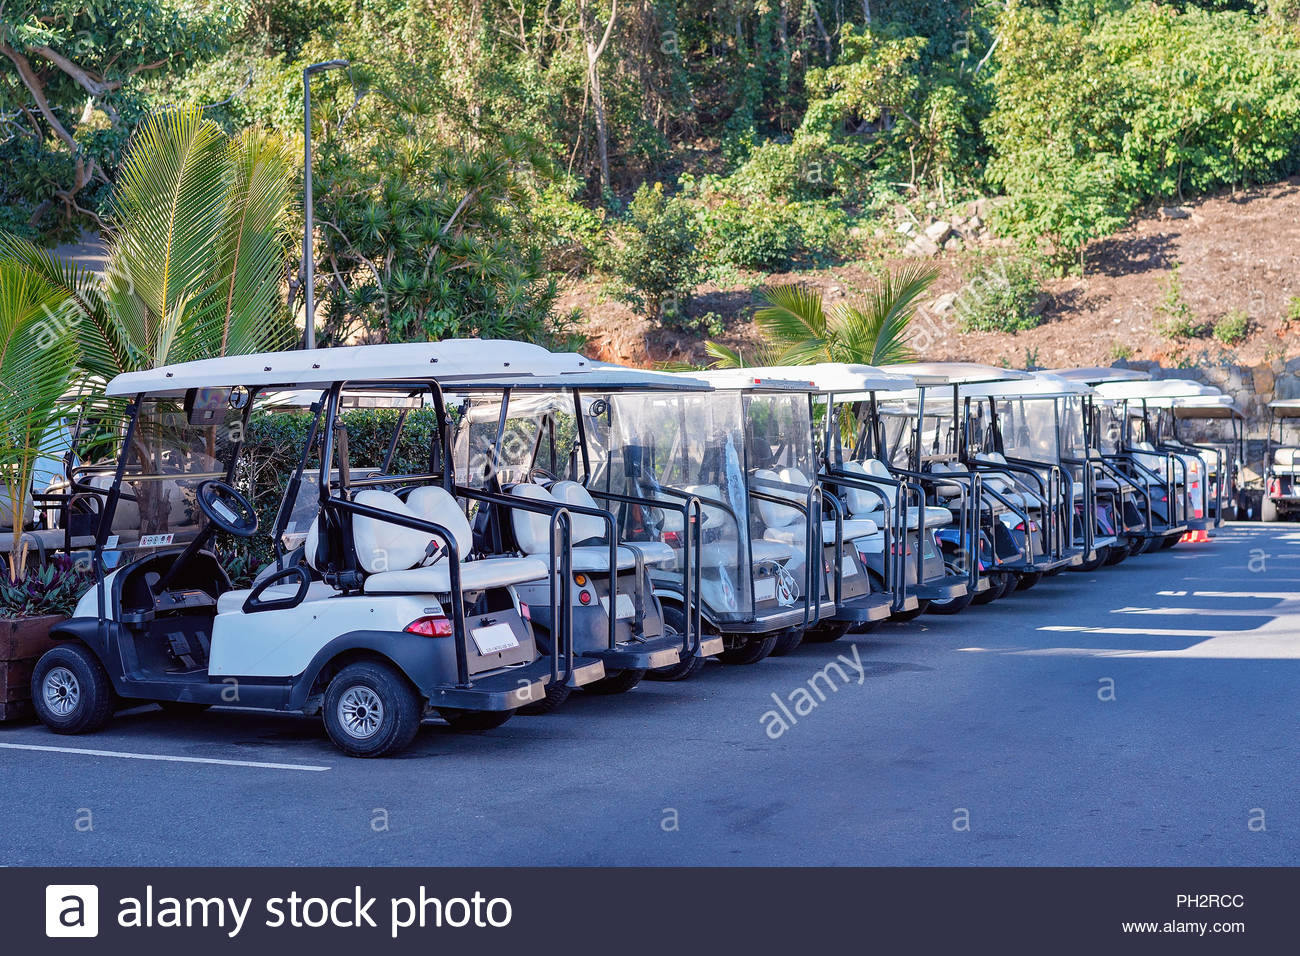 A row of golf buggies for guest use on Hamilton Island, Whitsundays, Australia - Stock Image